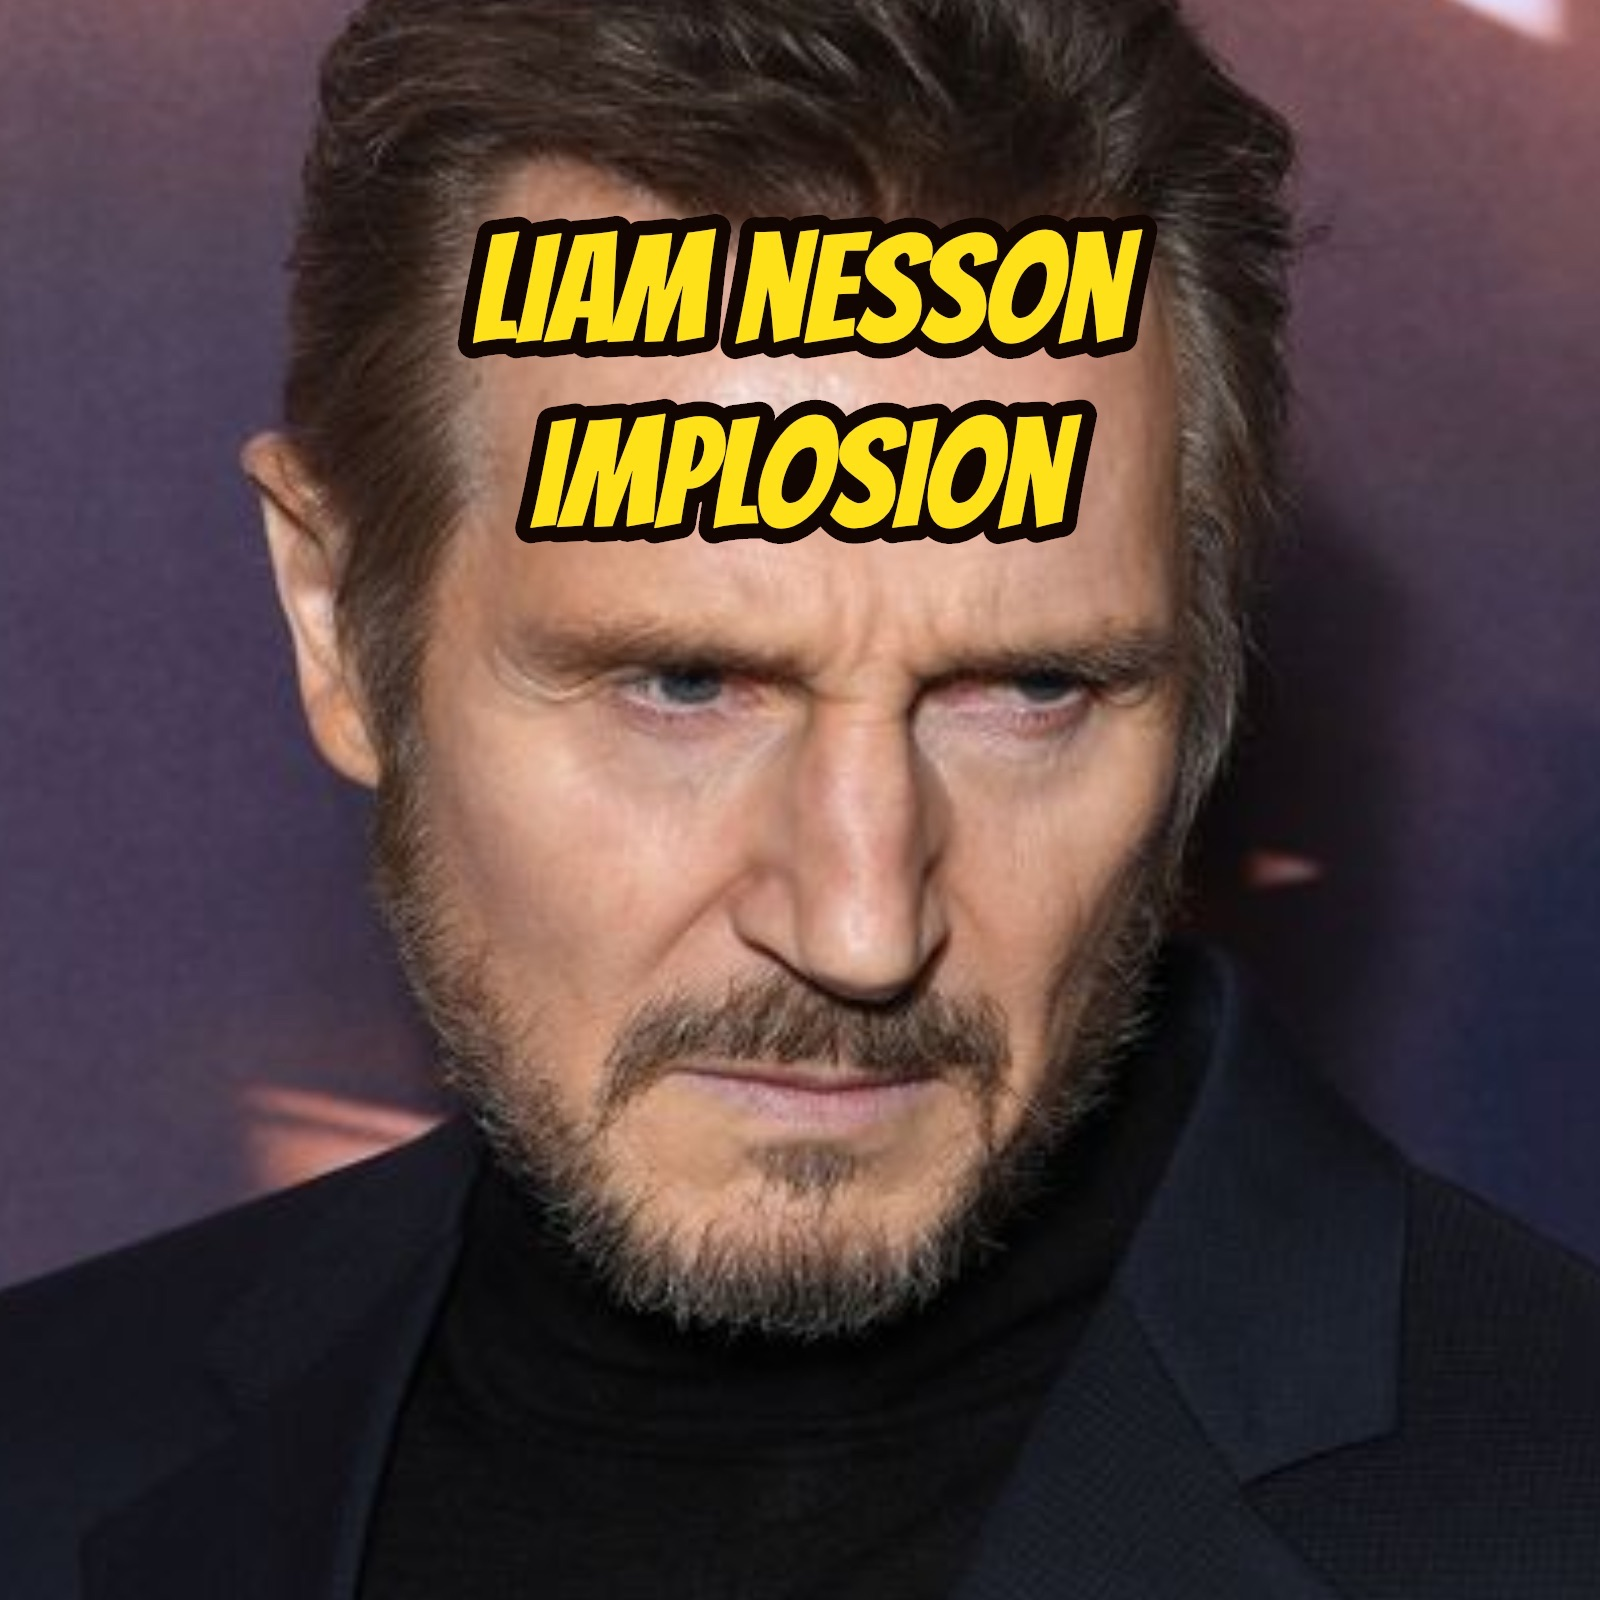 Liam Nesson Implosion & Preview to Episode 146